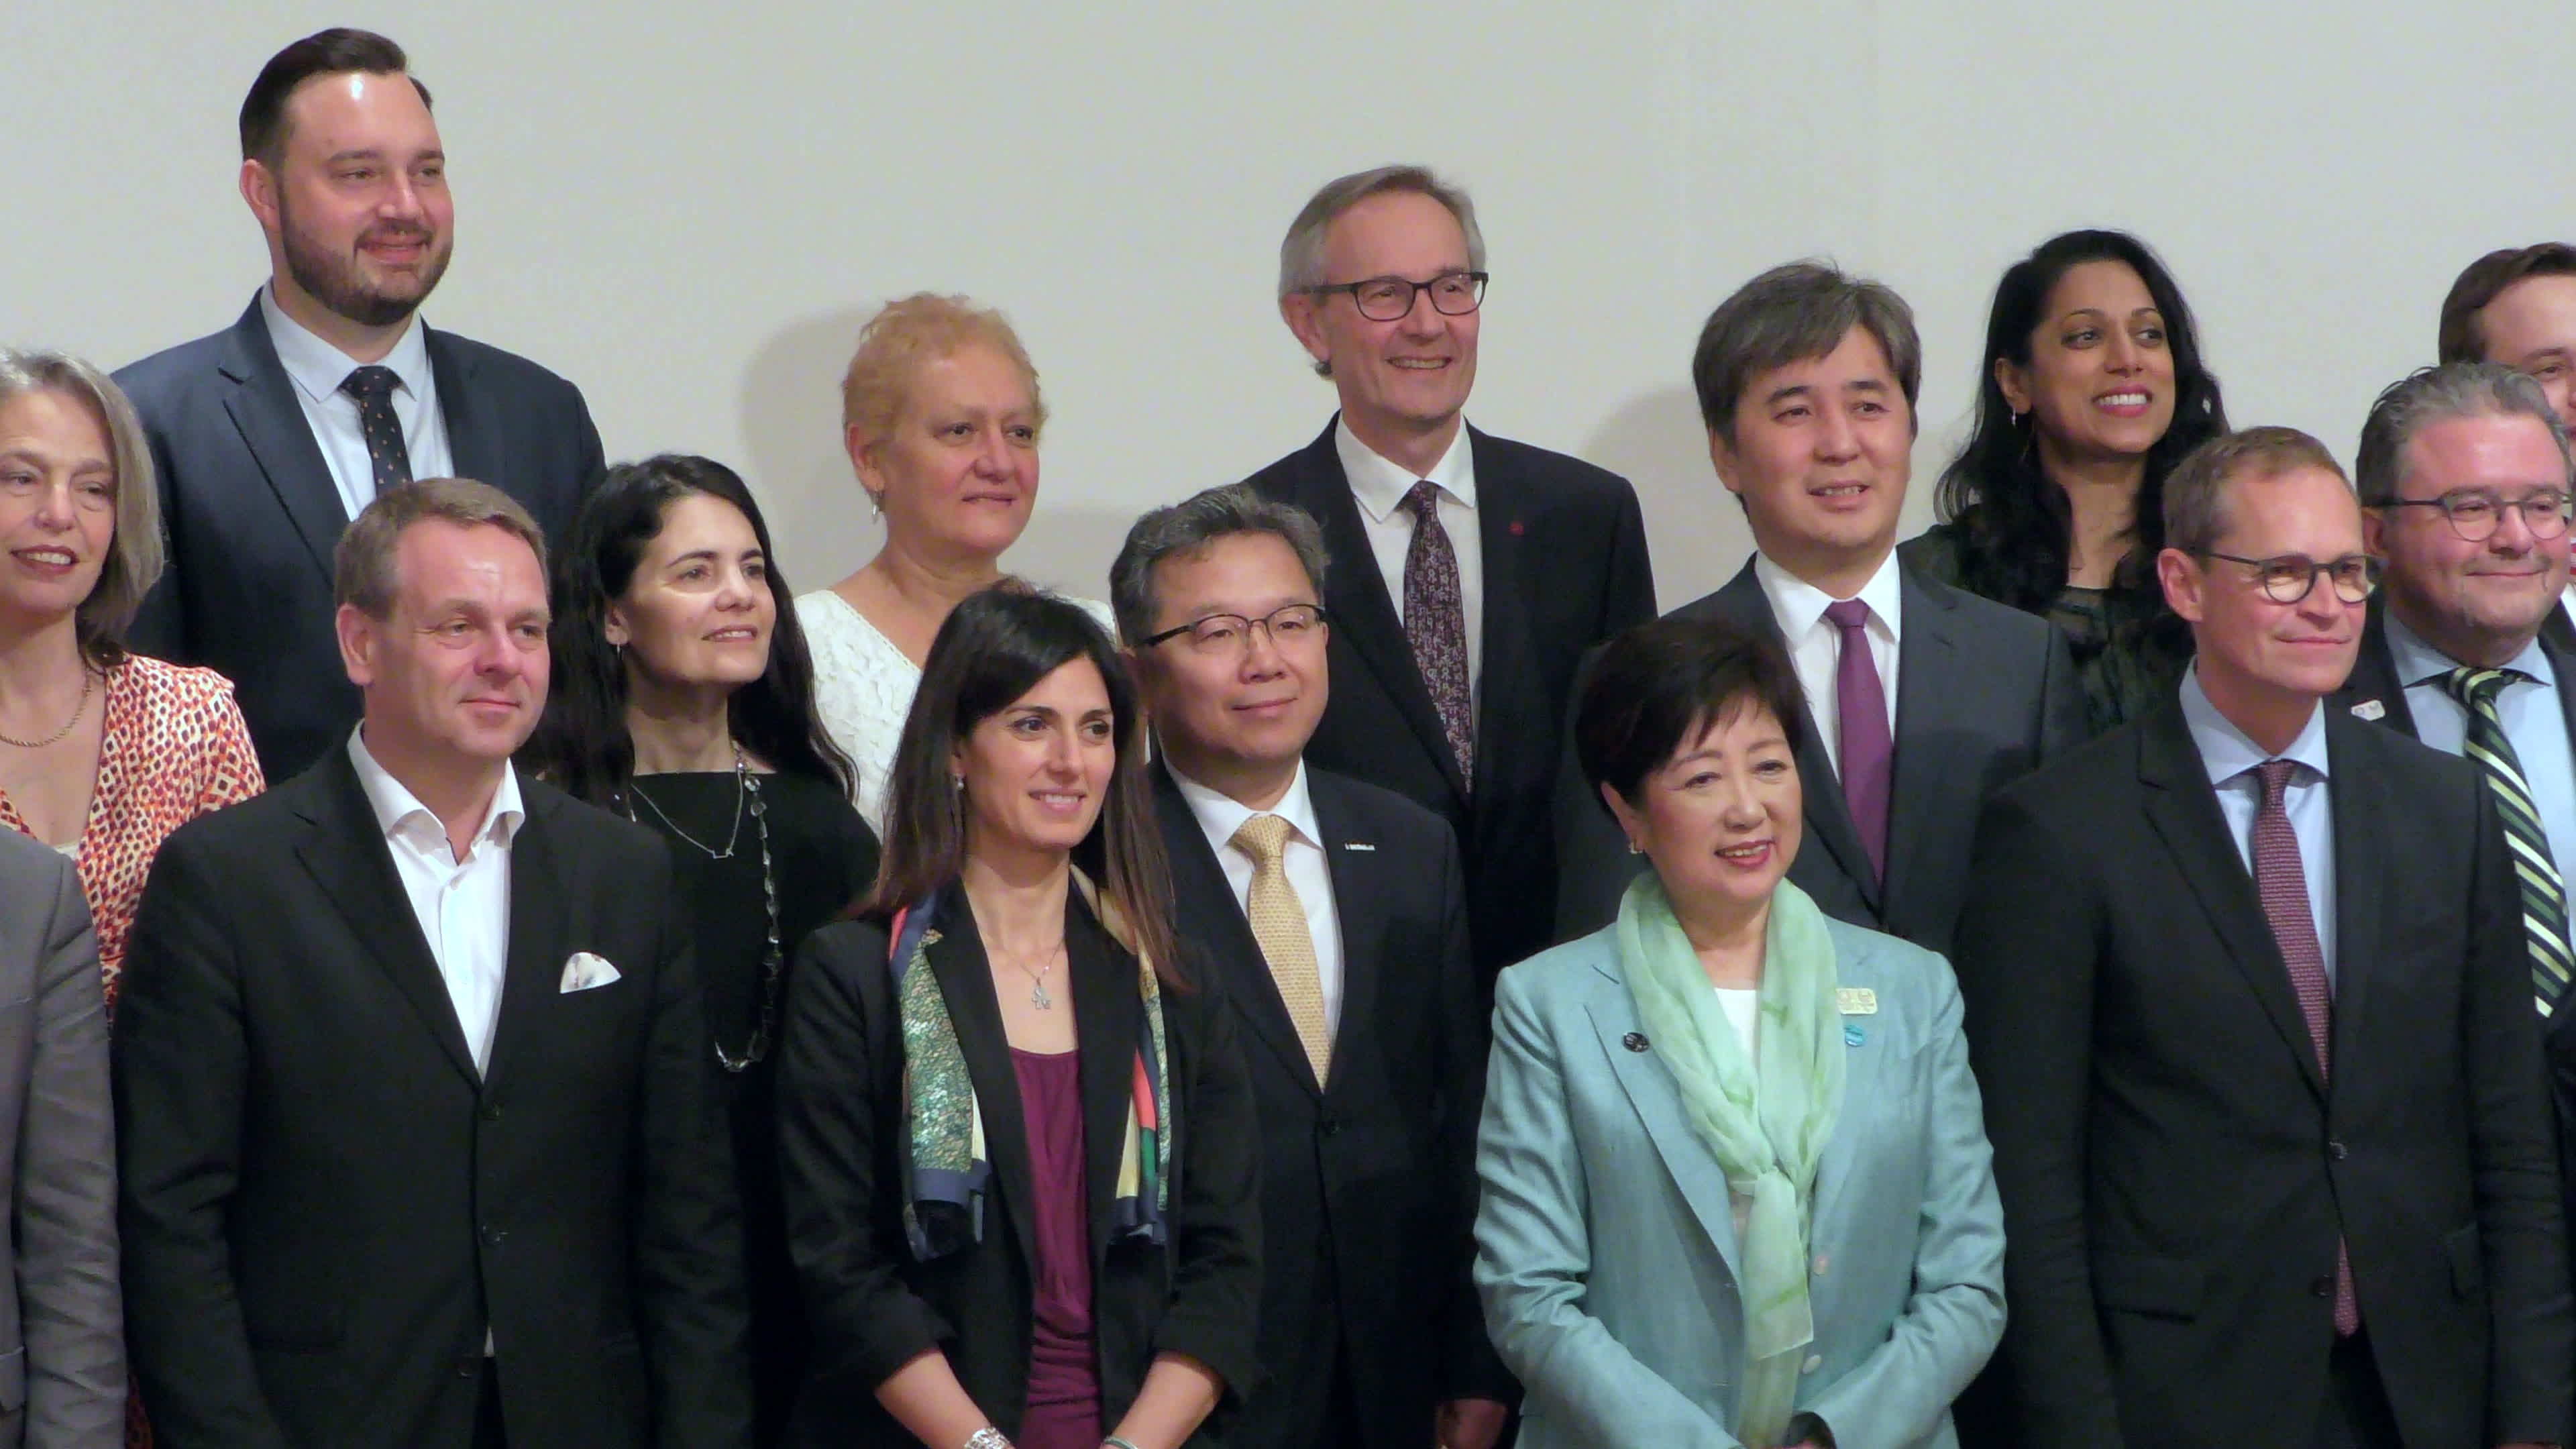 U20 Mayors Summit participants to send a communique to G20 leaders